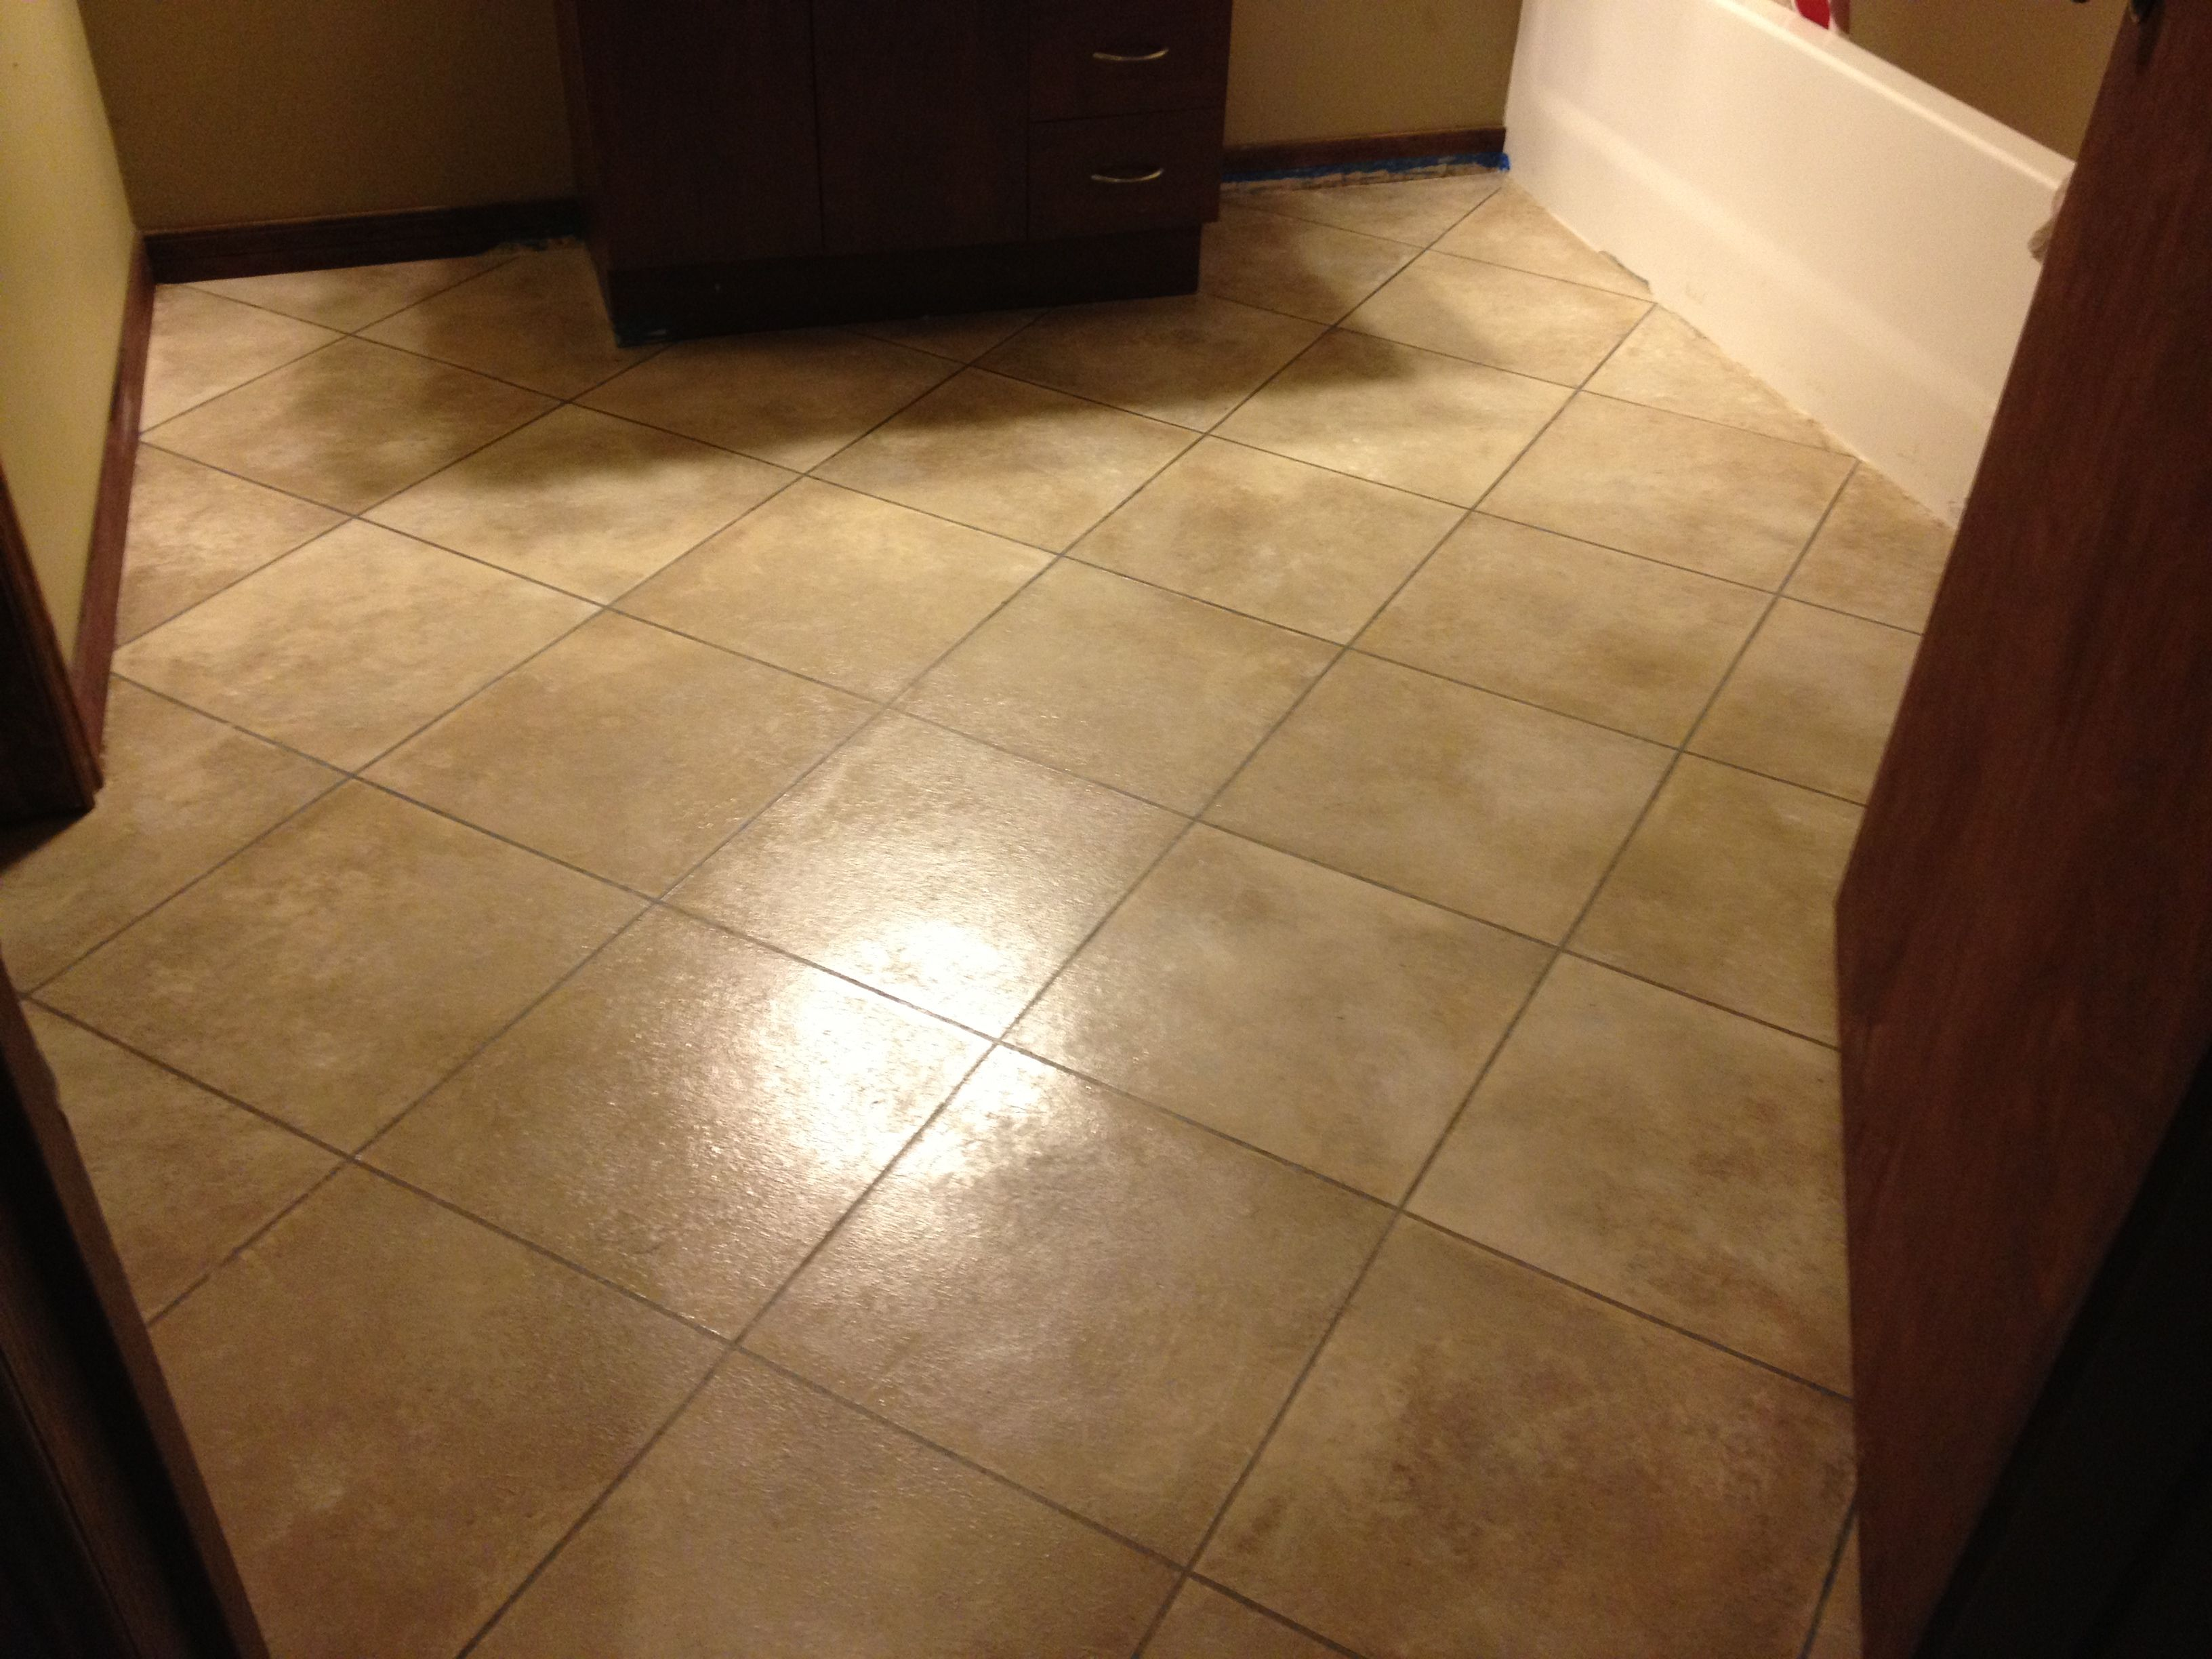 My Painted Tile On Concrete Floor In Bathroom I Used 1 4